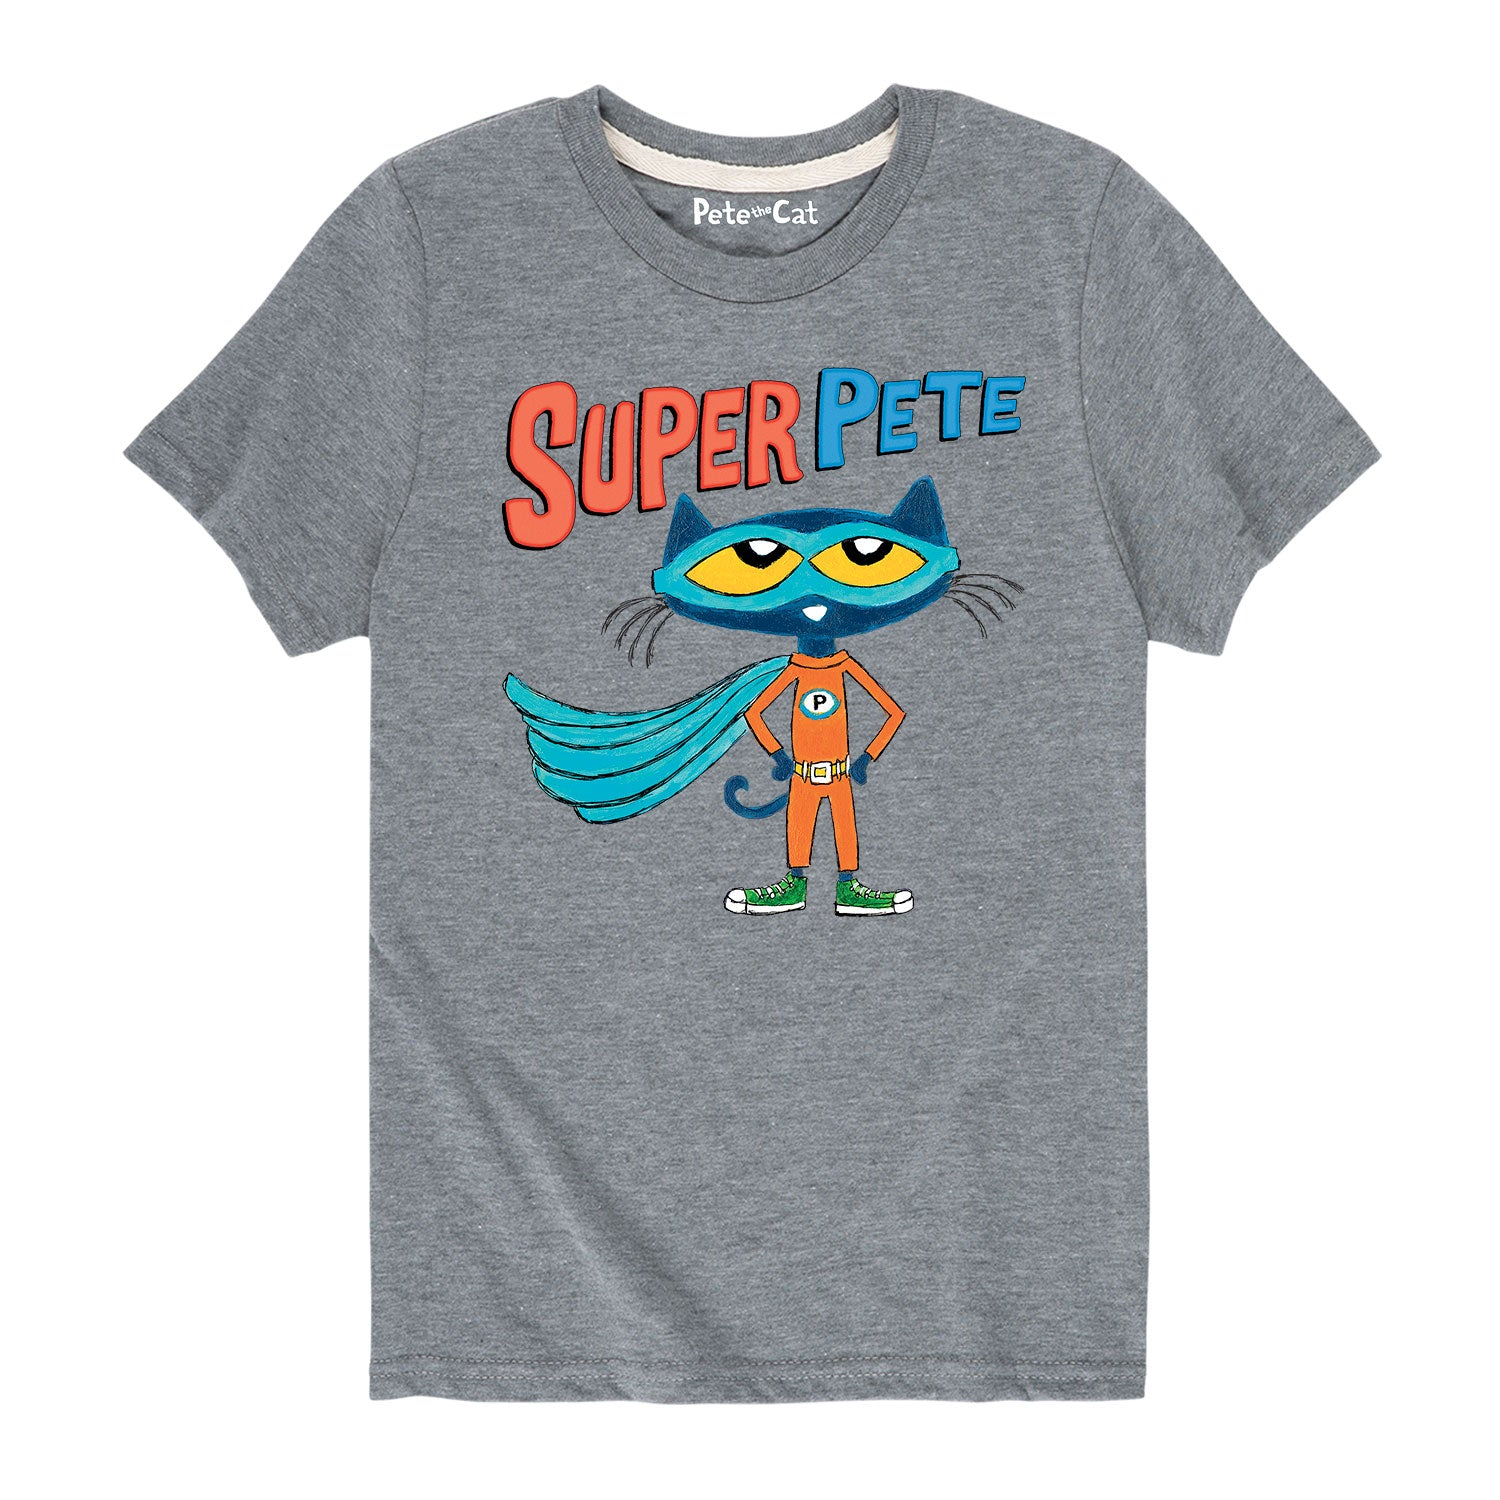 Super Pete With Cape - Youth & Toddler Short Sleeve T-Shirt